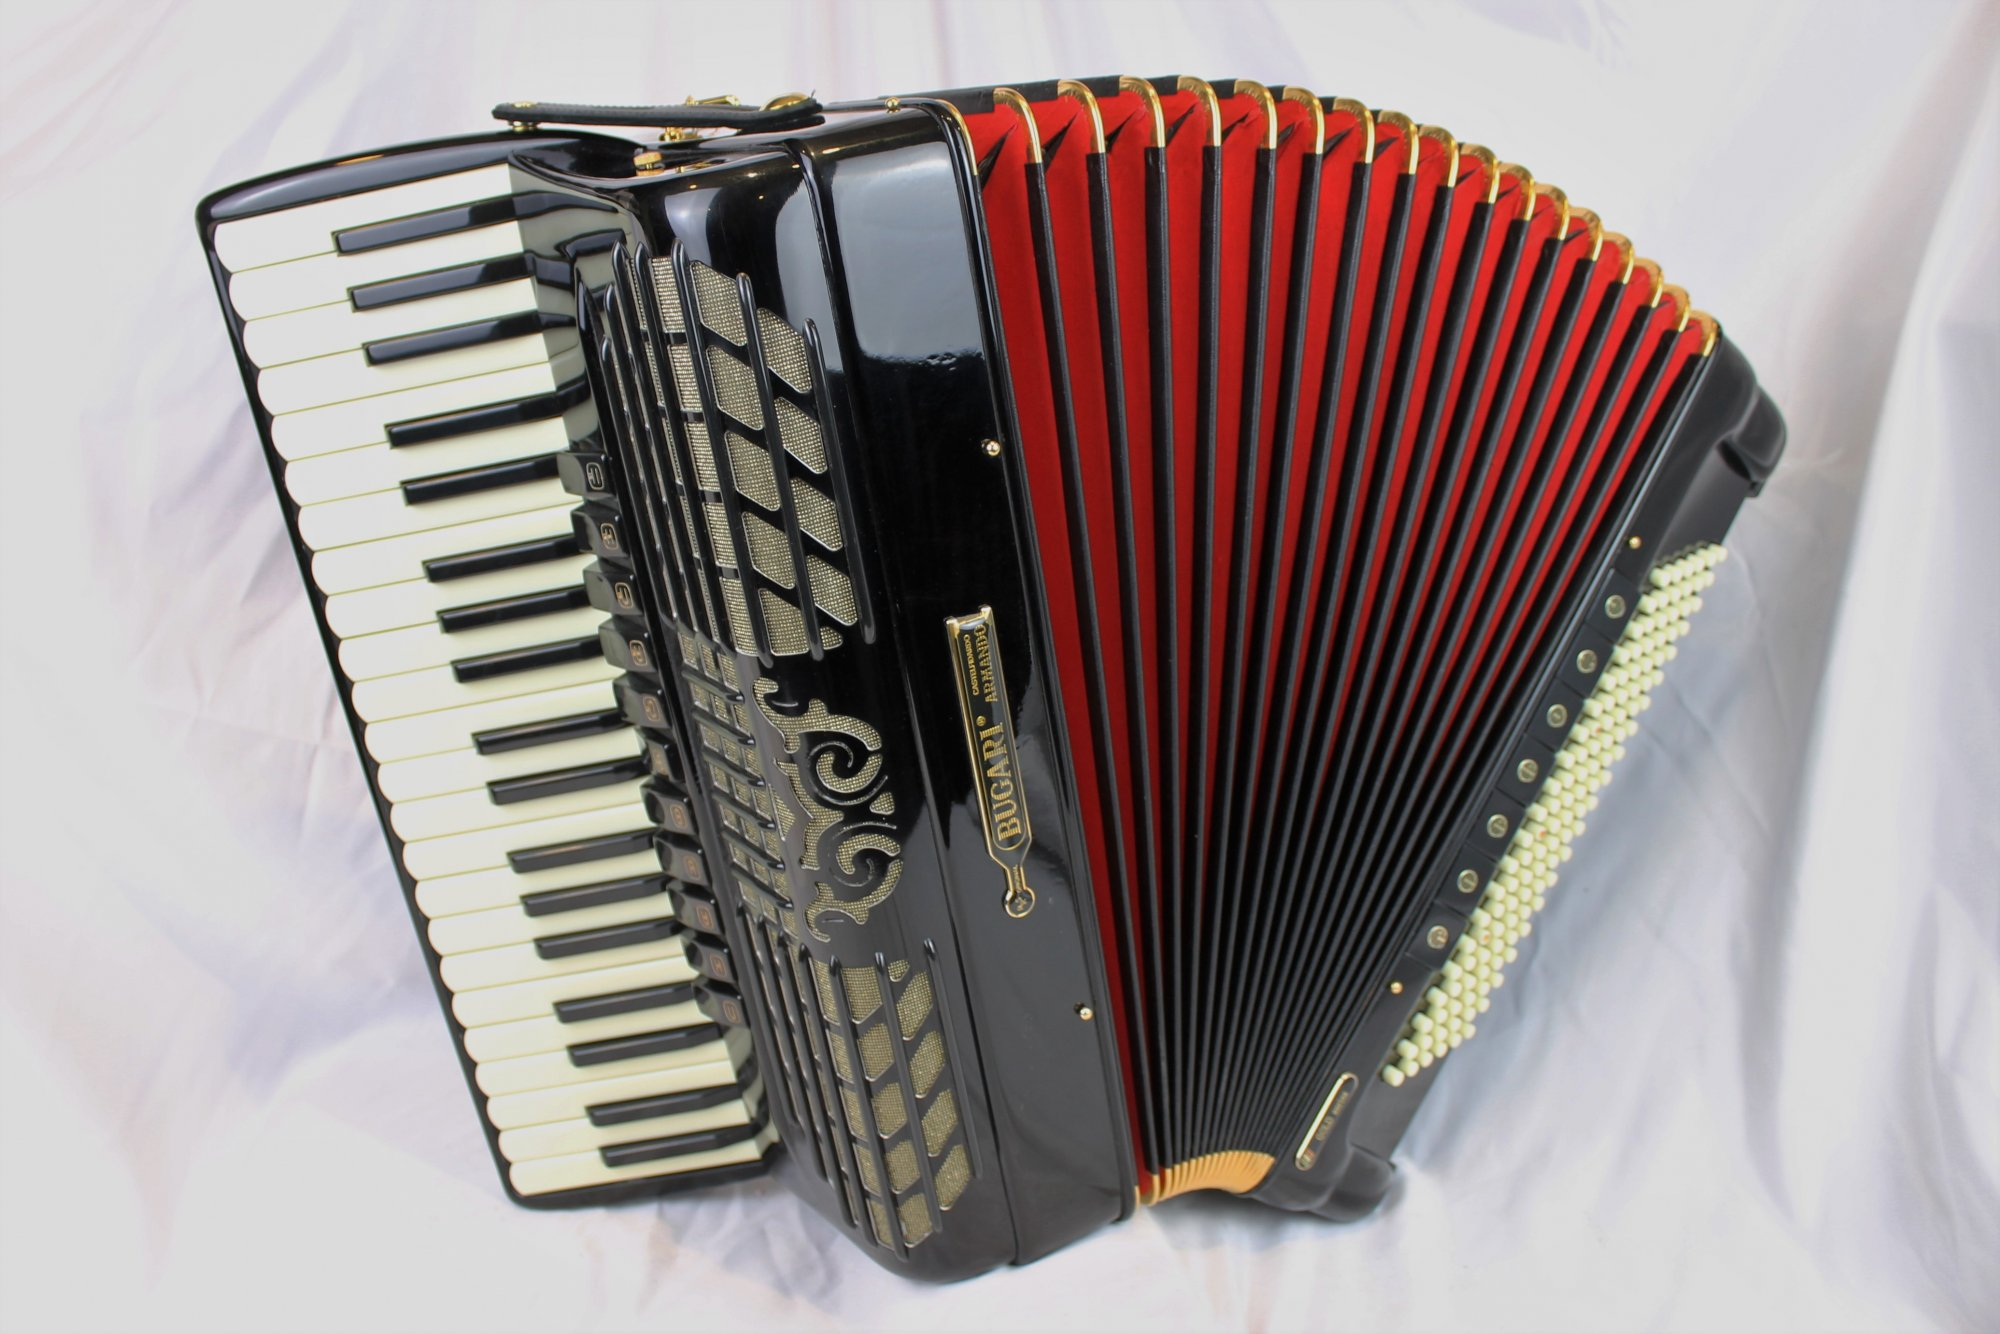 5032 - Like New Black Bugari 280 Gold Piano Accordion LMMM 41 120